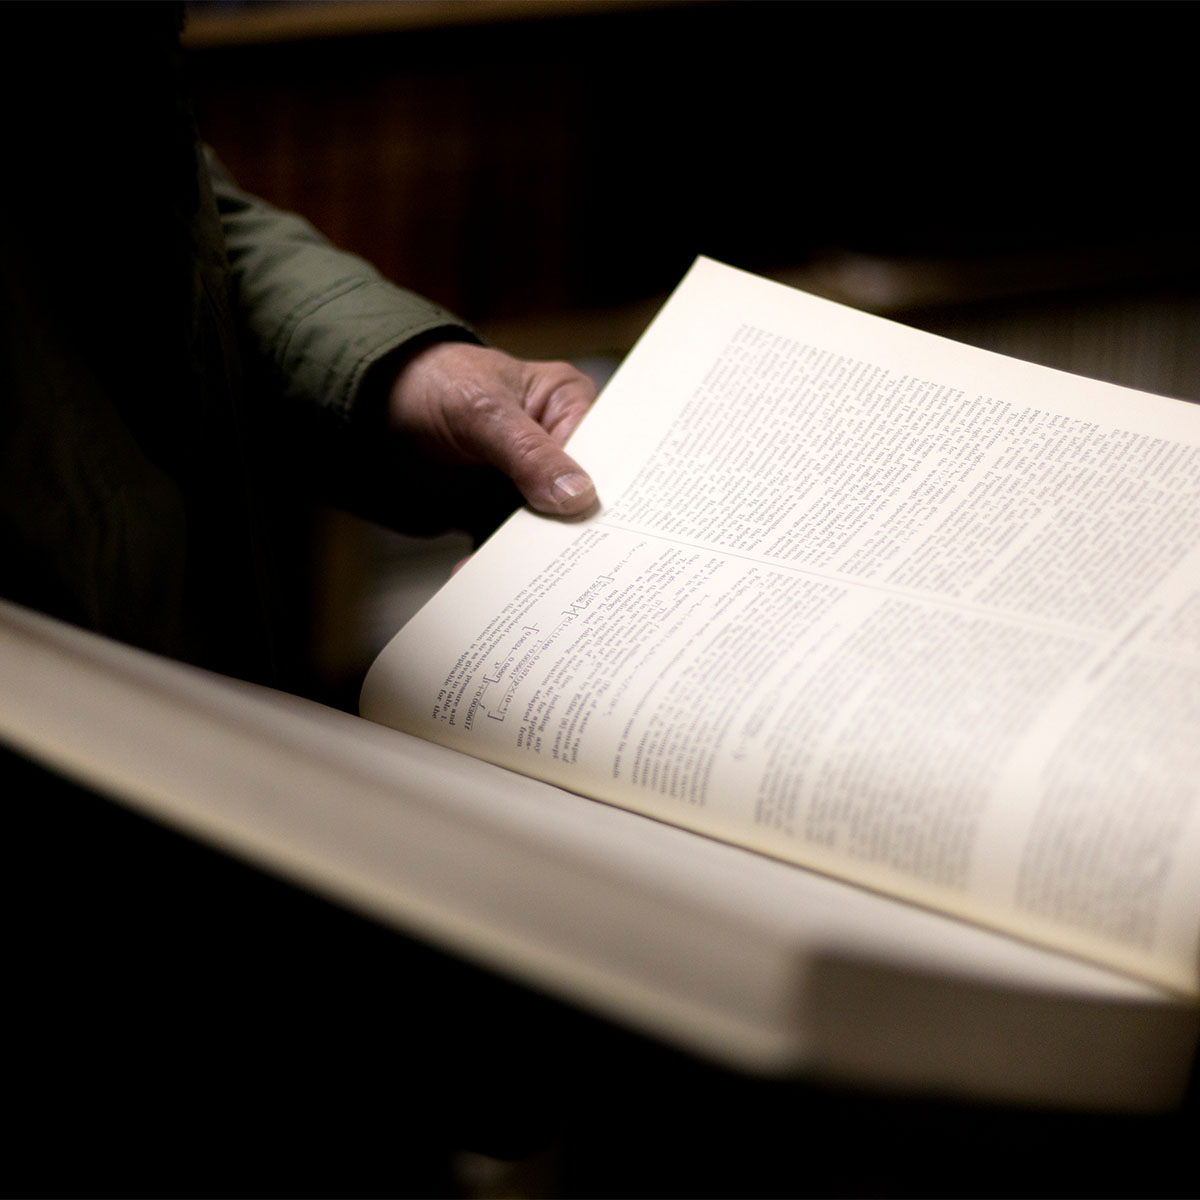 A person holds a large textbook in one hand in a dimly lit room.